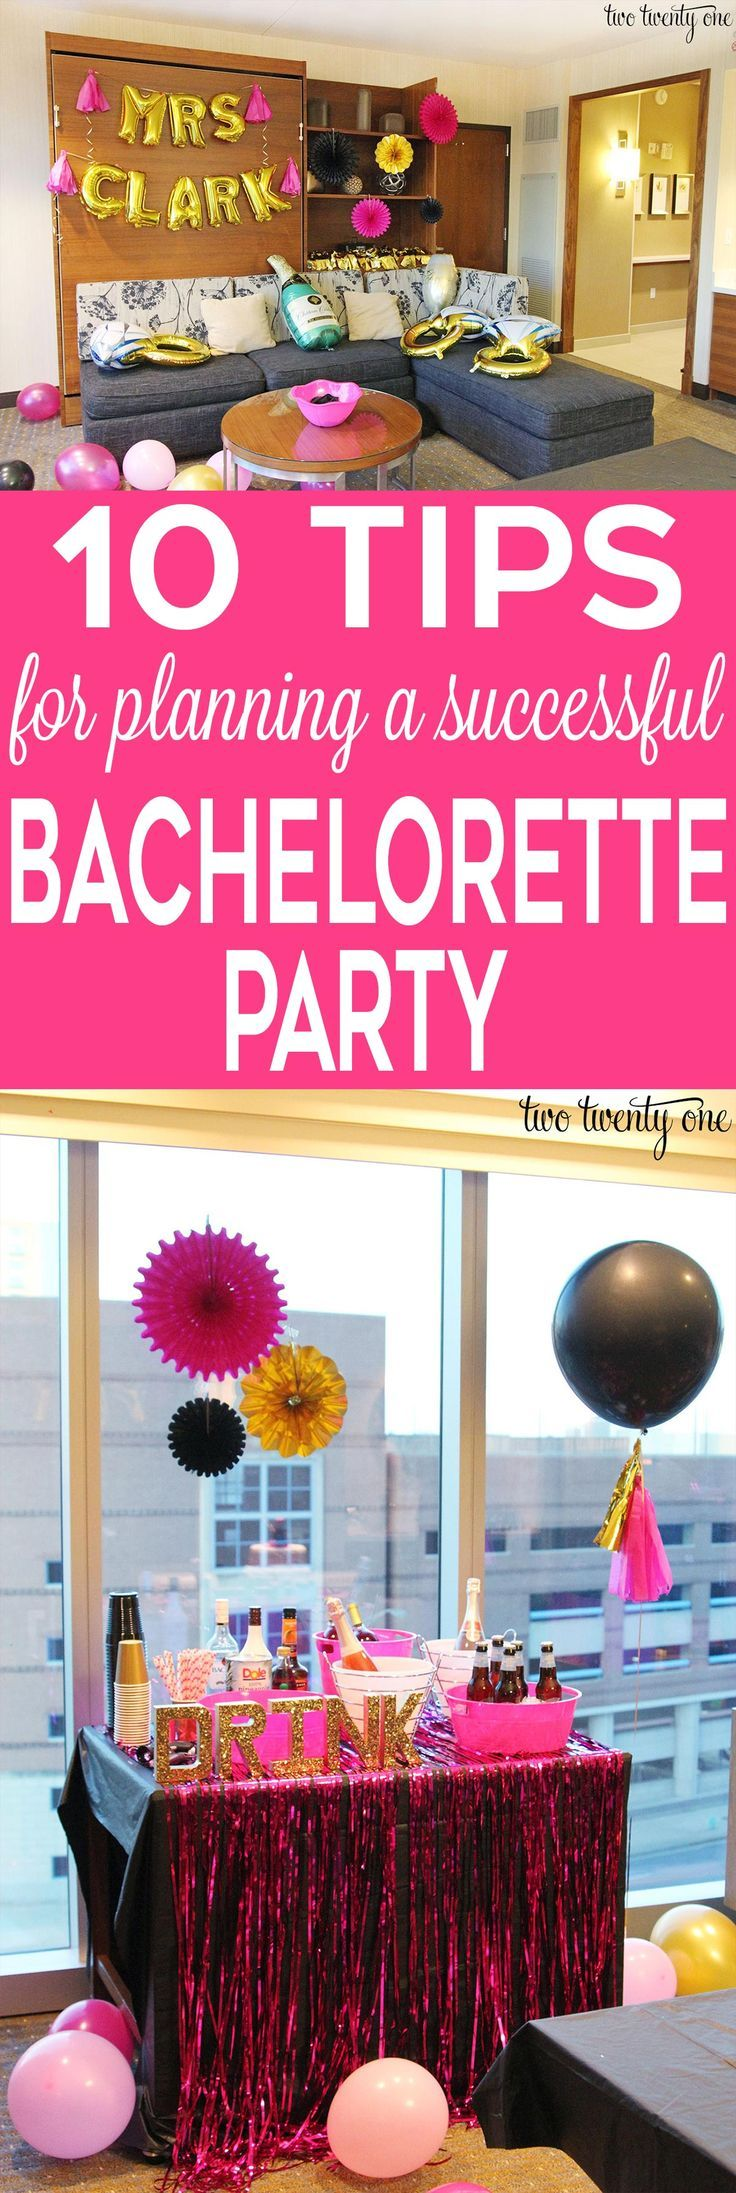 207 best party ideas images on pinterest for Bachelor party decoration ideas